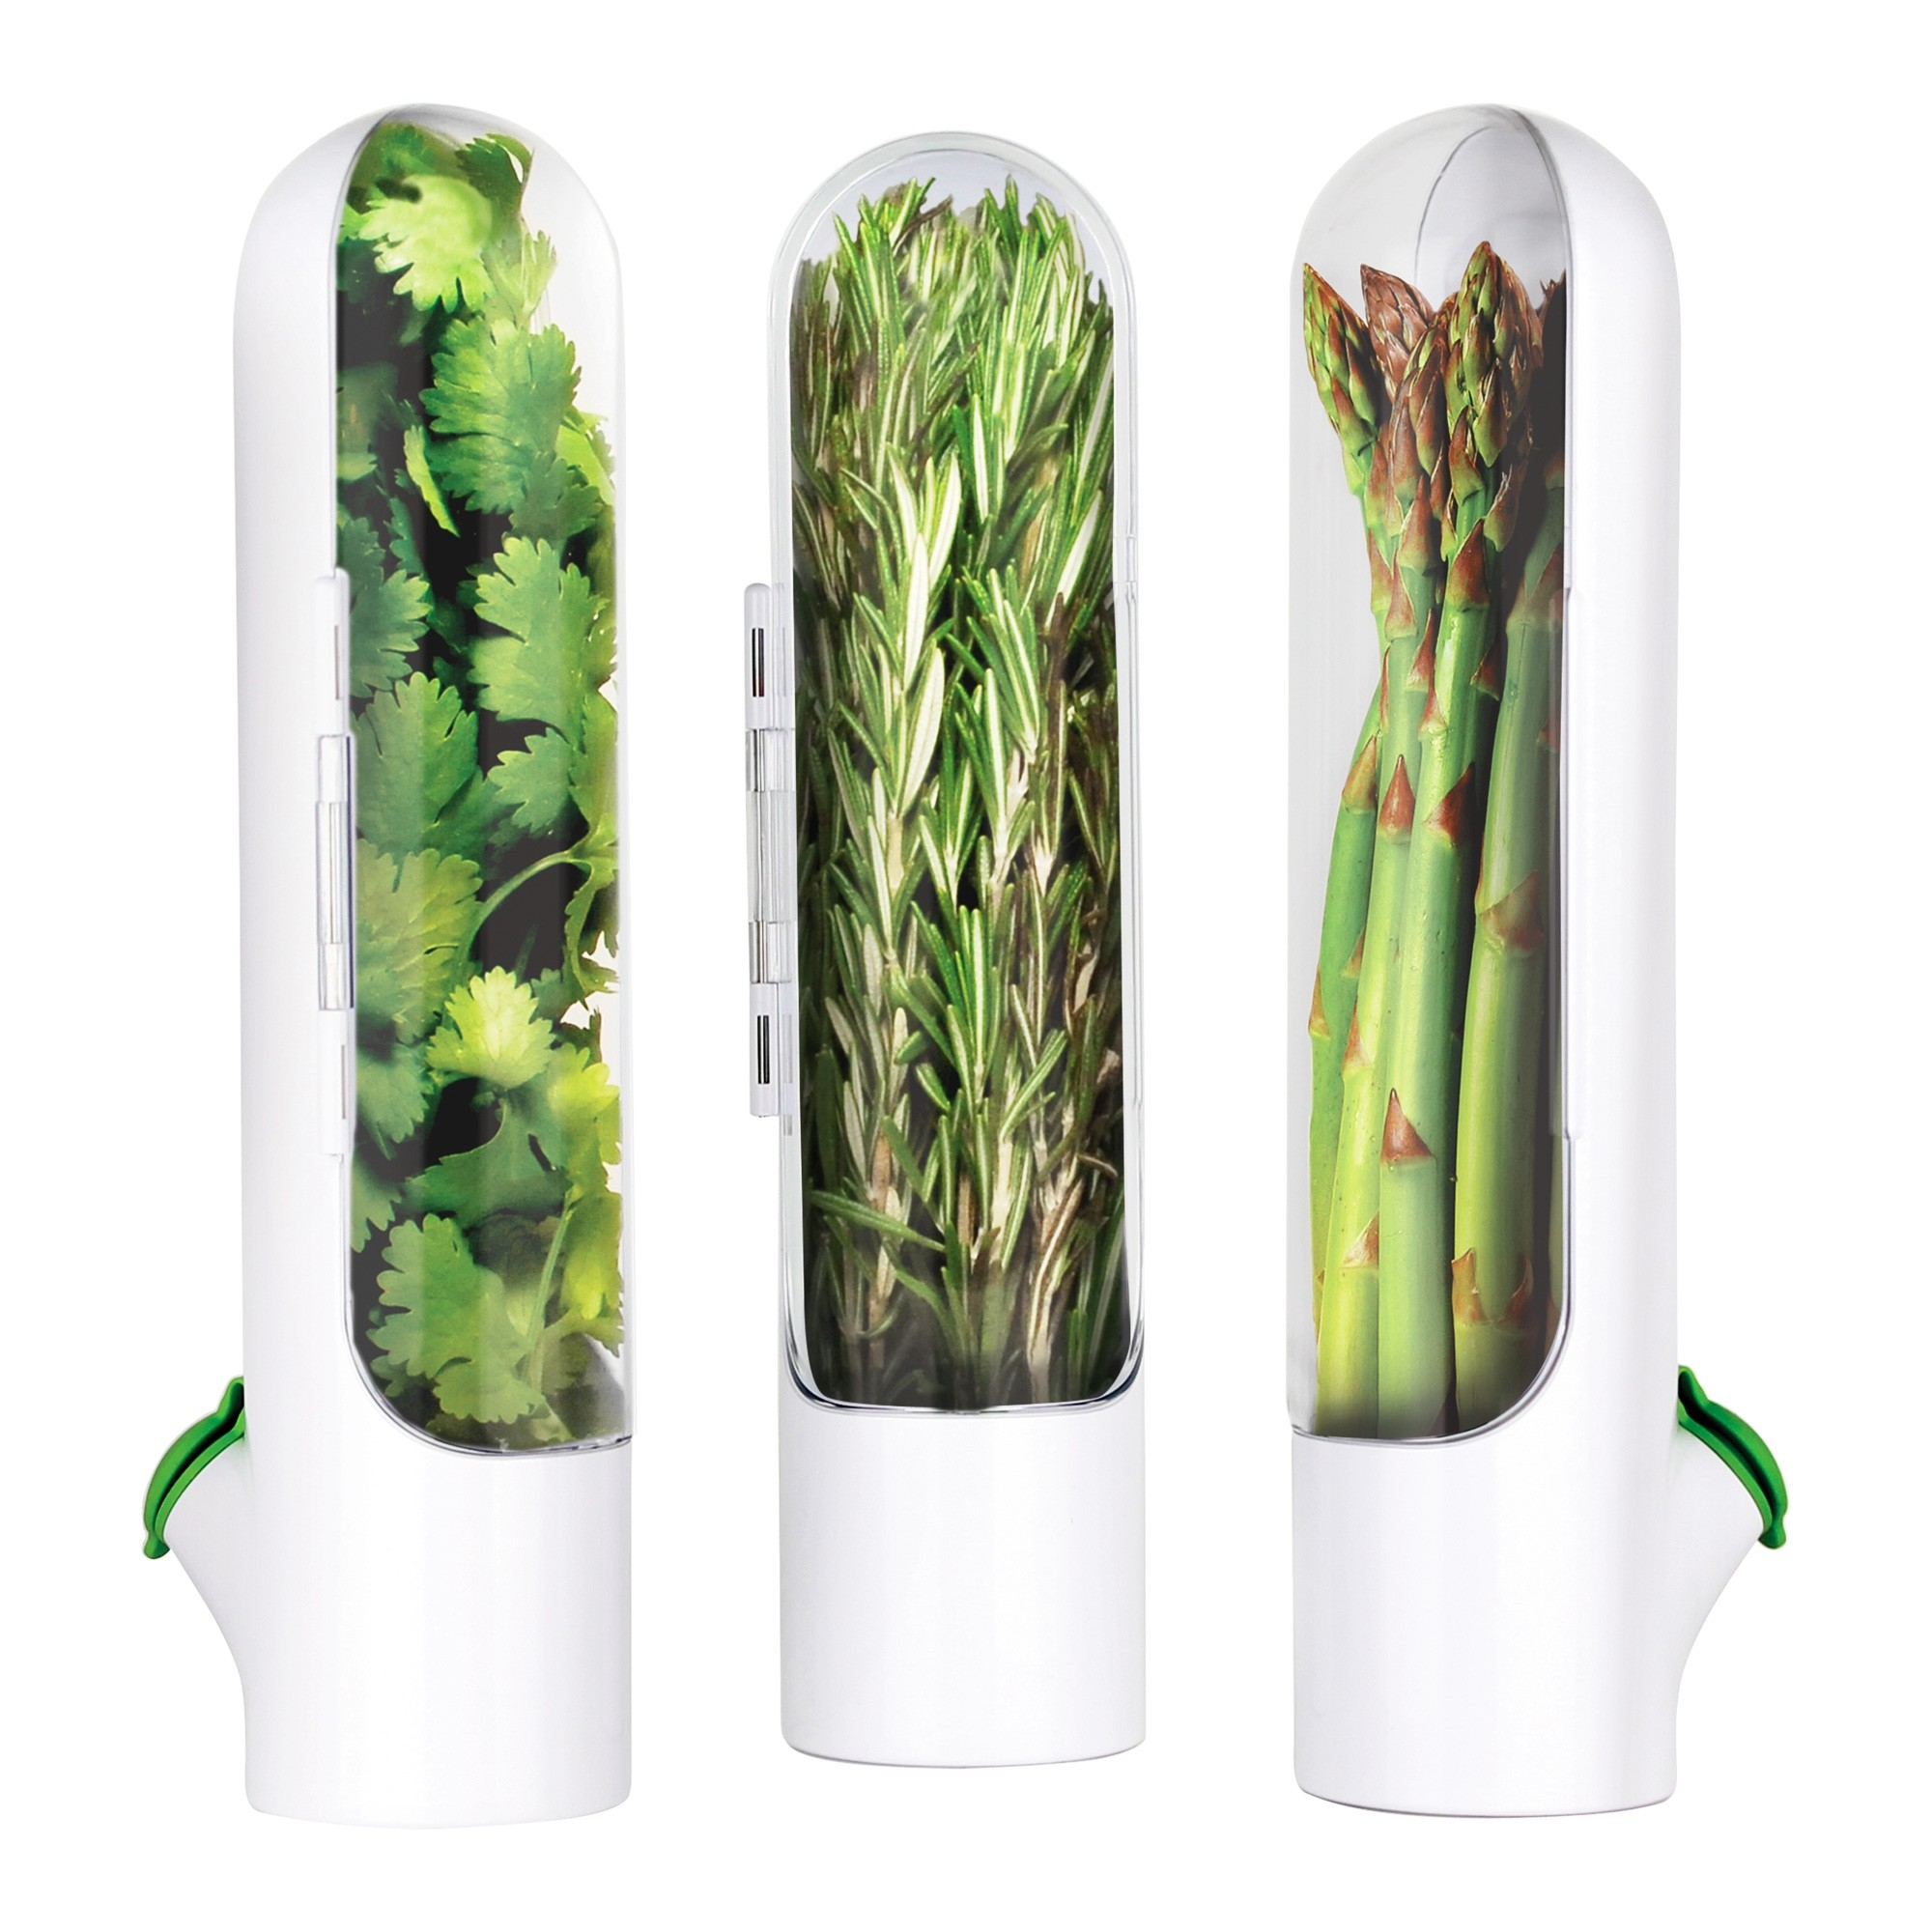 Prepara Herb Savor Pod 2.0 Set of 3 Pack